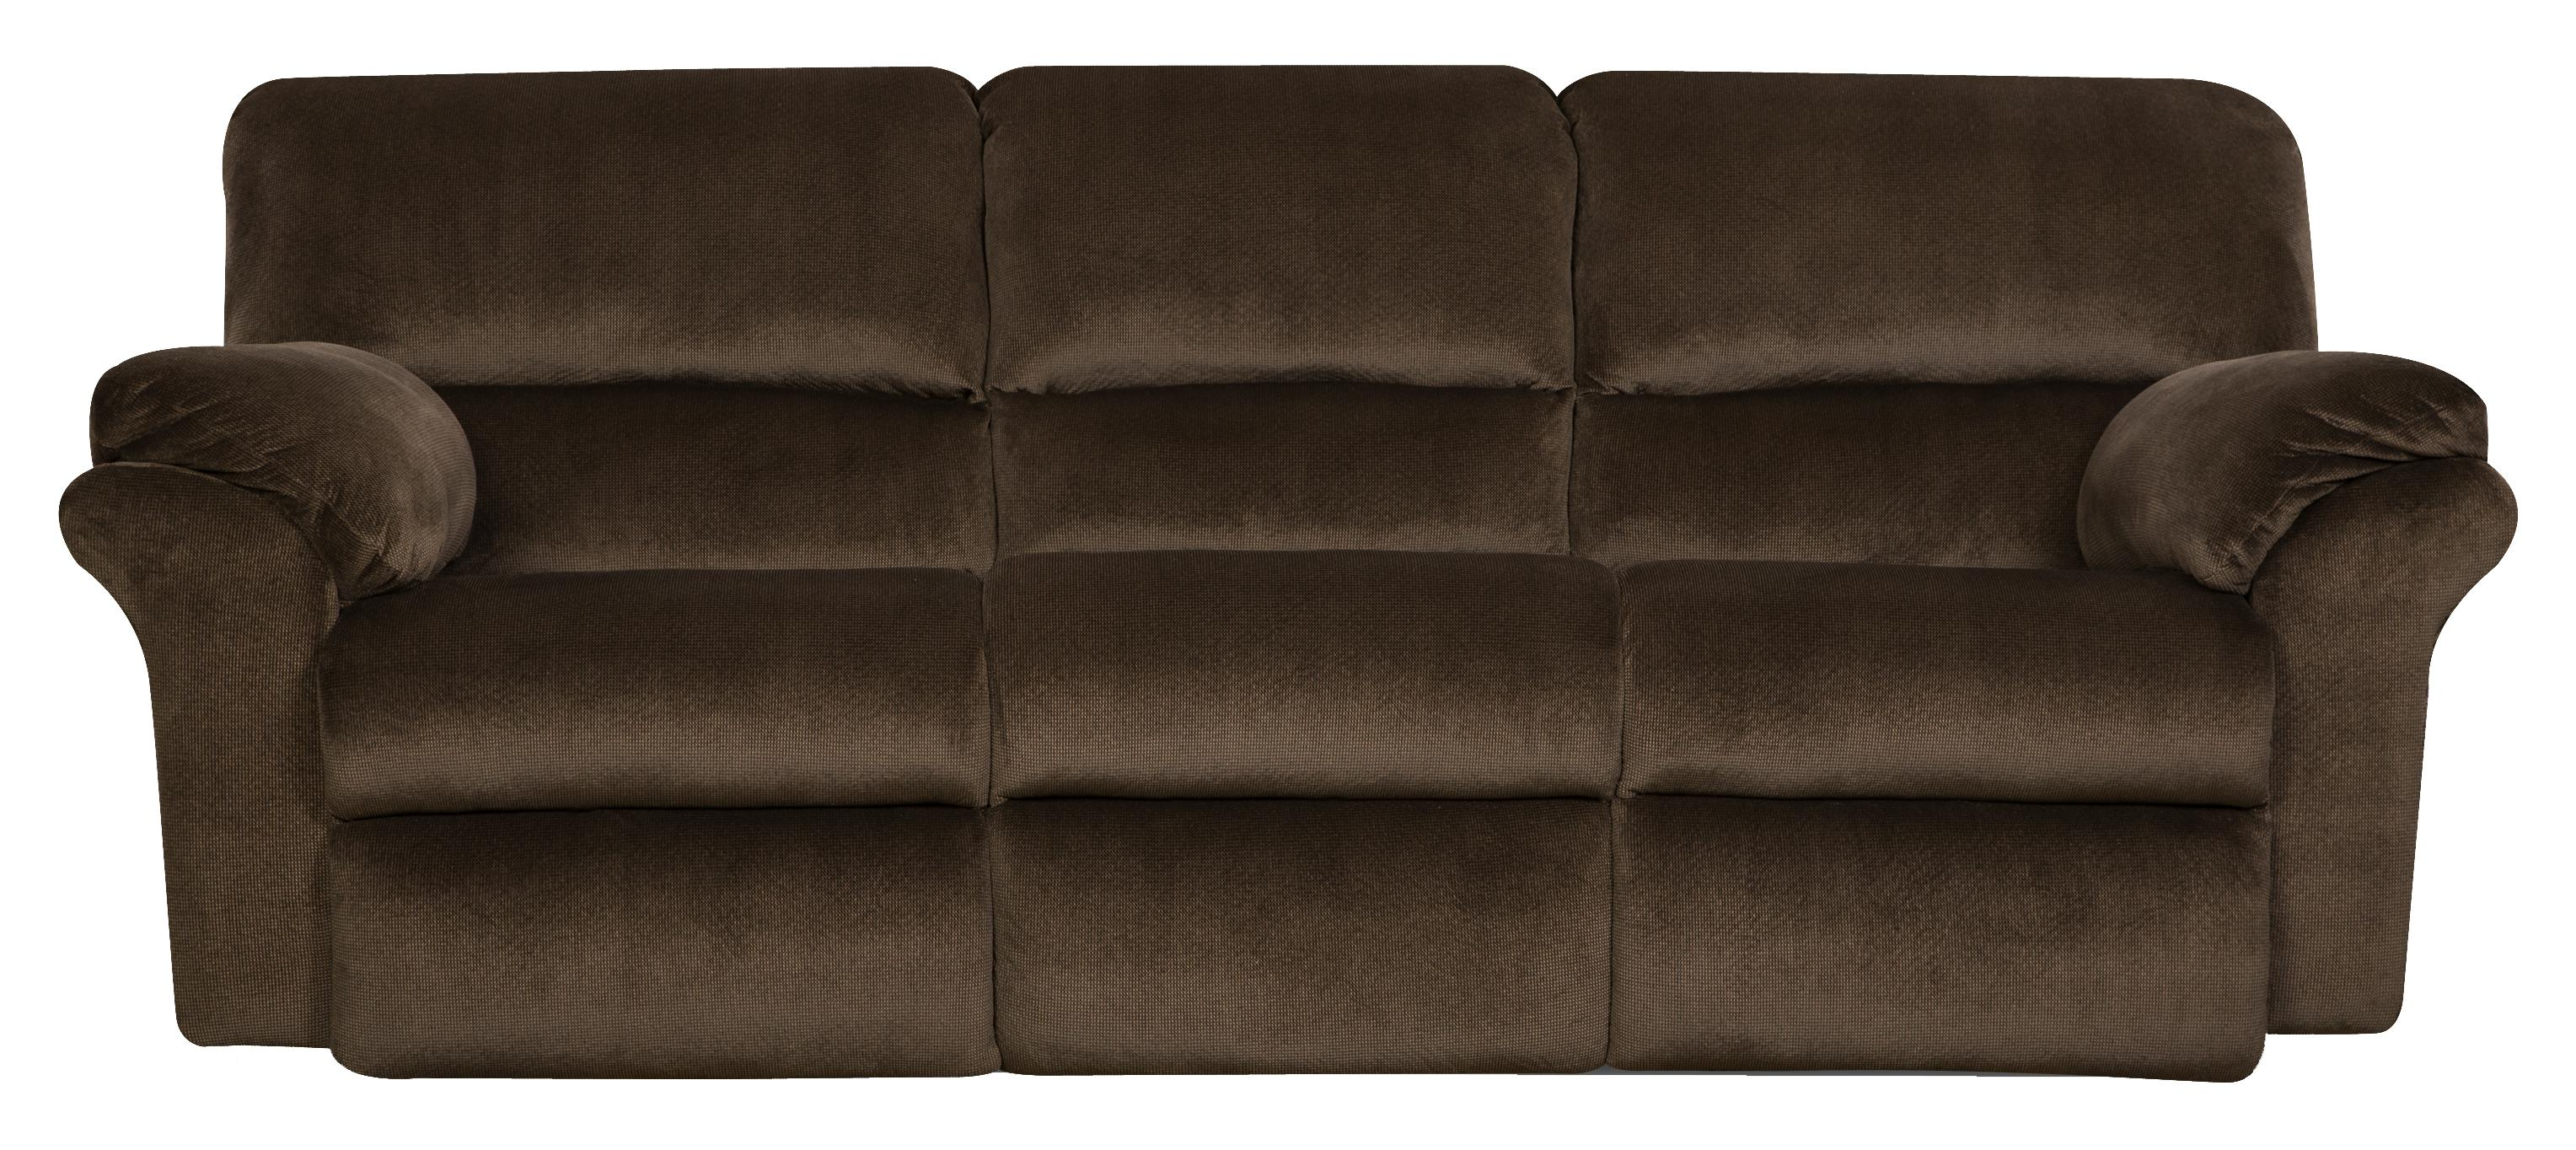 Southern Motion Cloud Nine Double Reclining Sofa - Item Number: 849-31-281-22